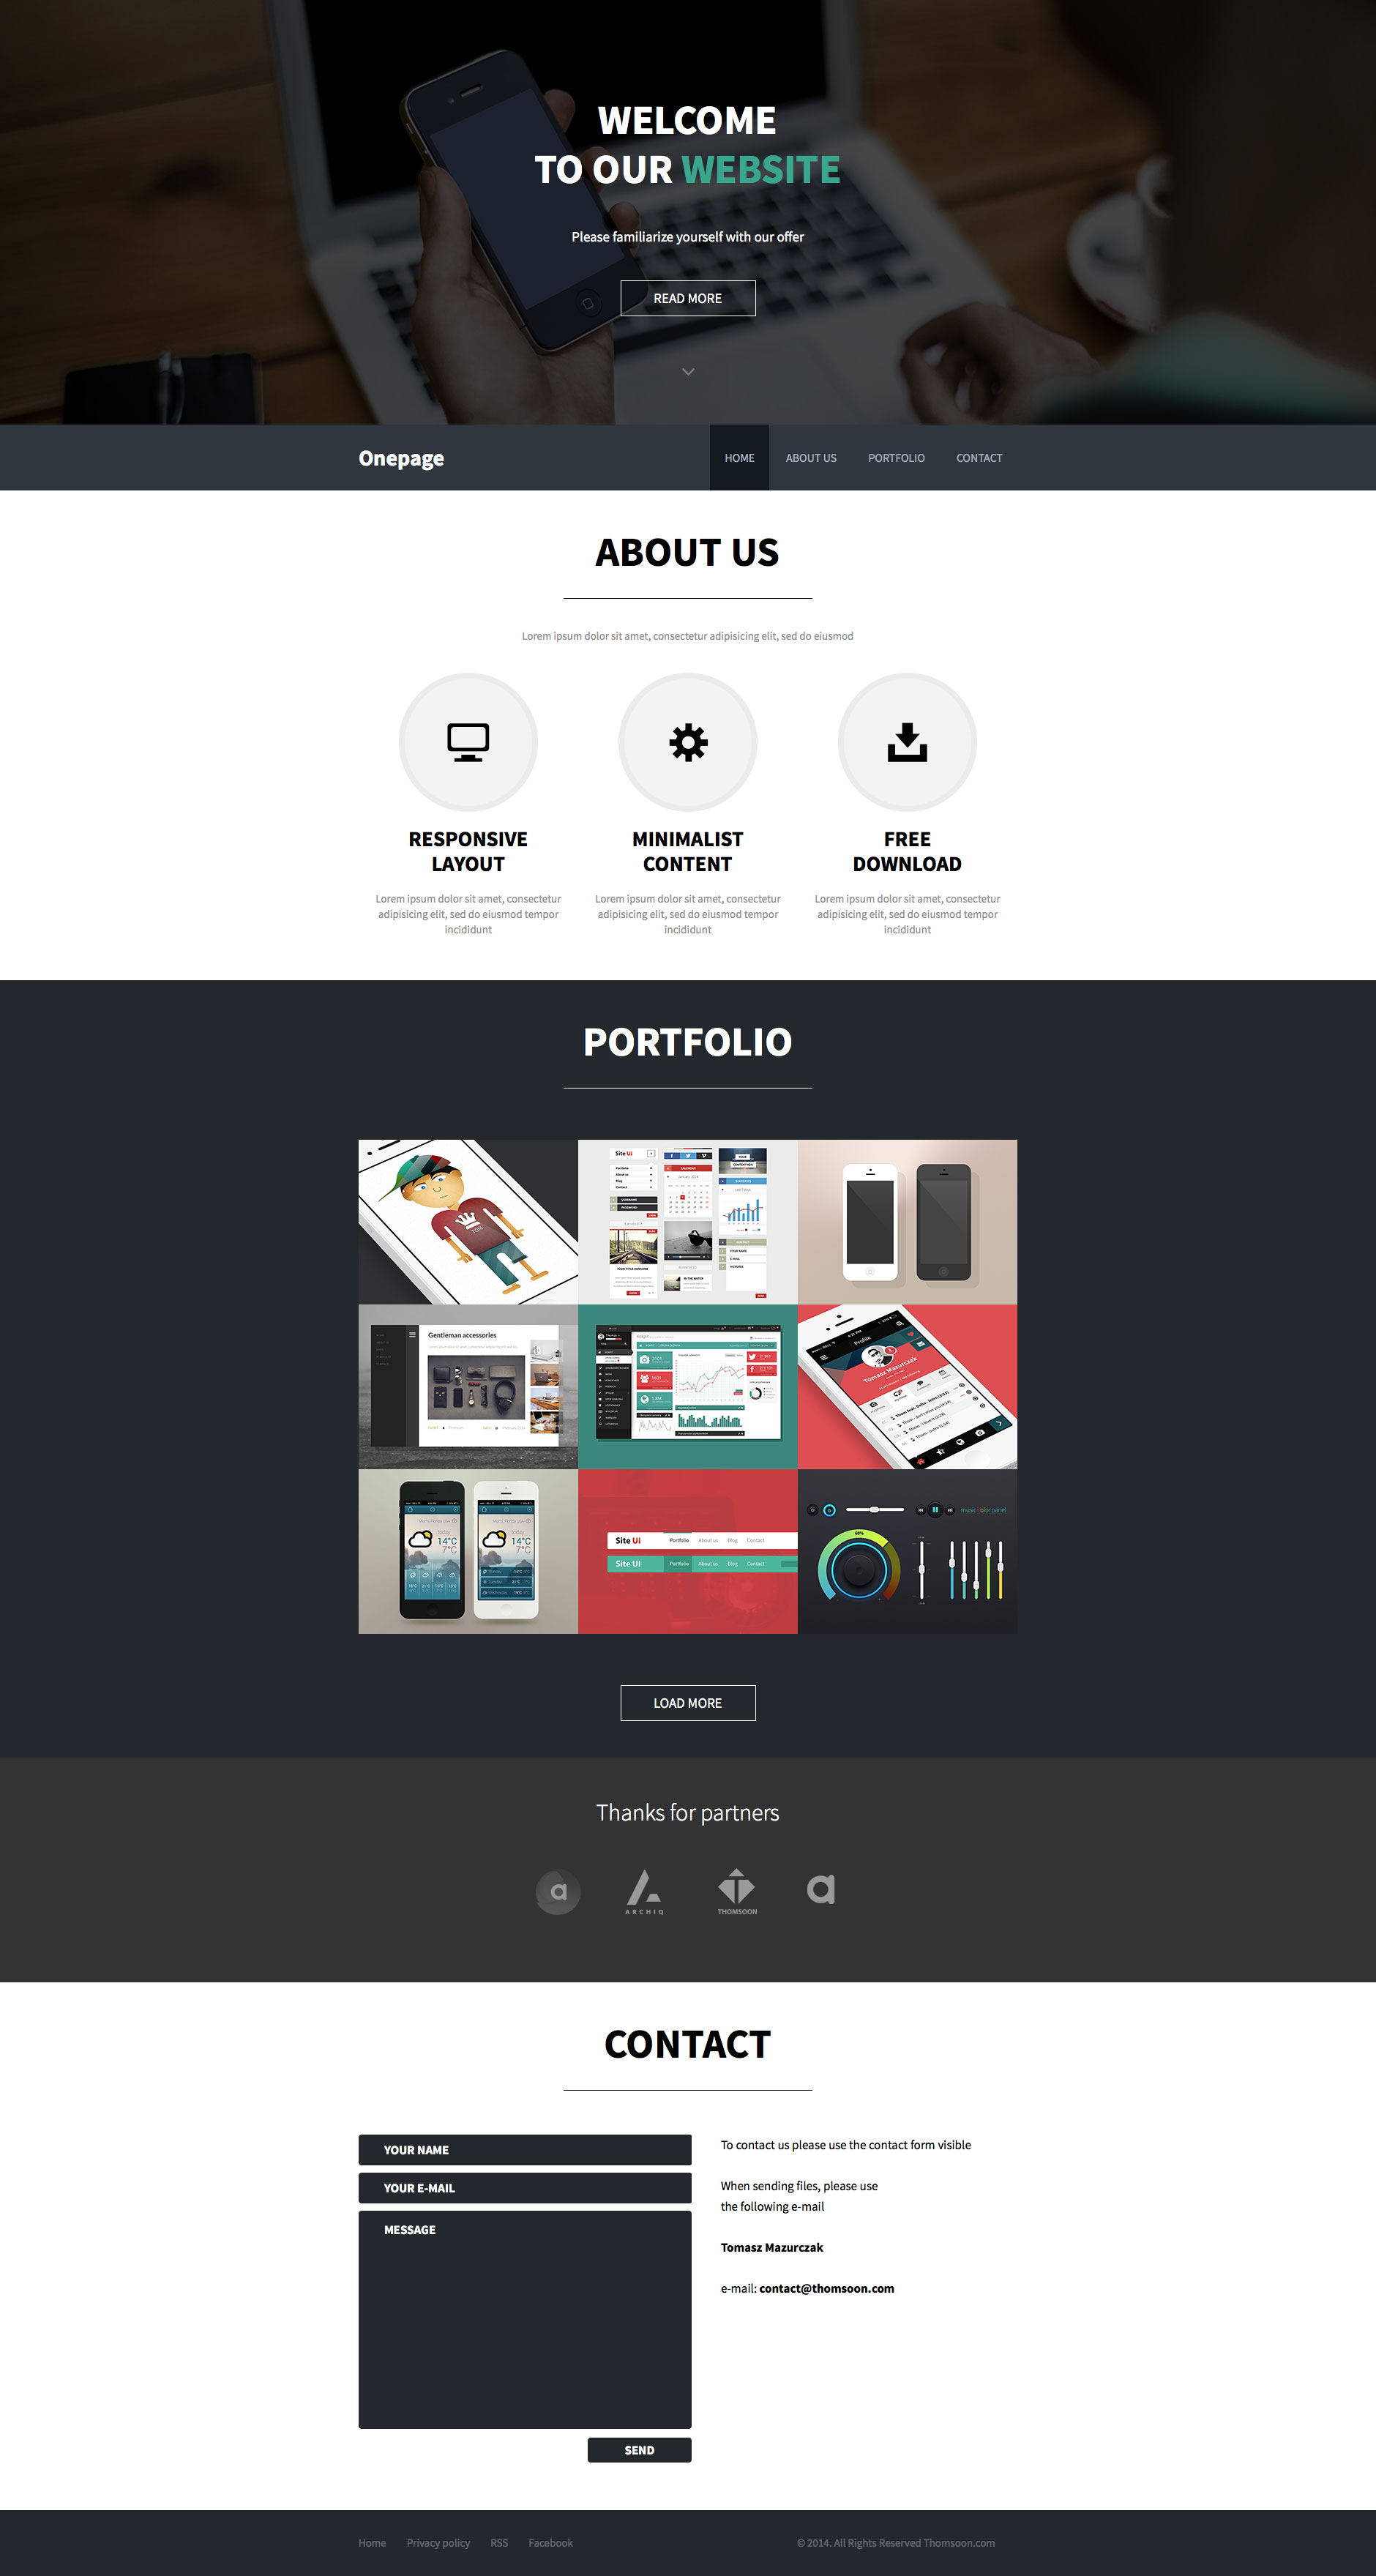 Free minimalist HTML5 and CSS3 based responsive website with content About Us, Portfolio and Contact form pages. It's fully responsive and additionally contains Behance API for your portfolio.